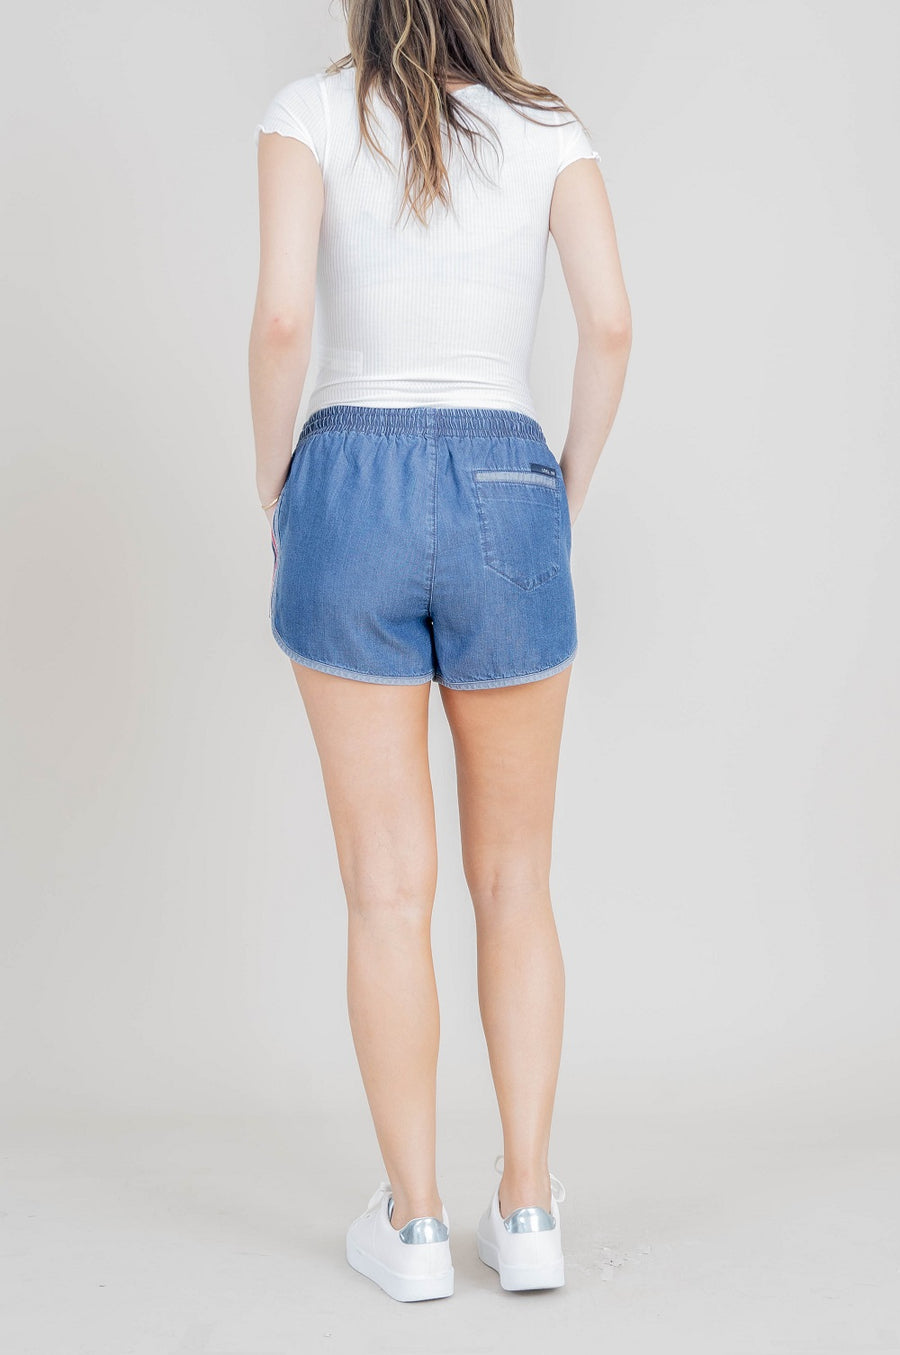 Tara Running Shorts - level99jeans